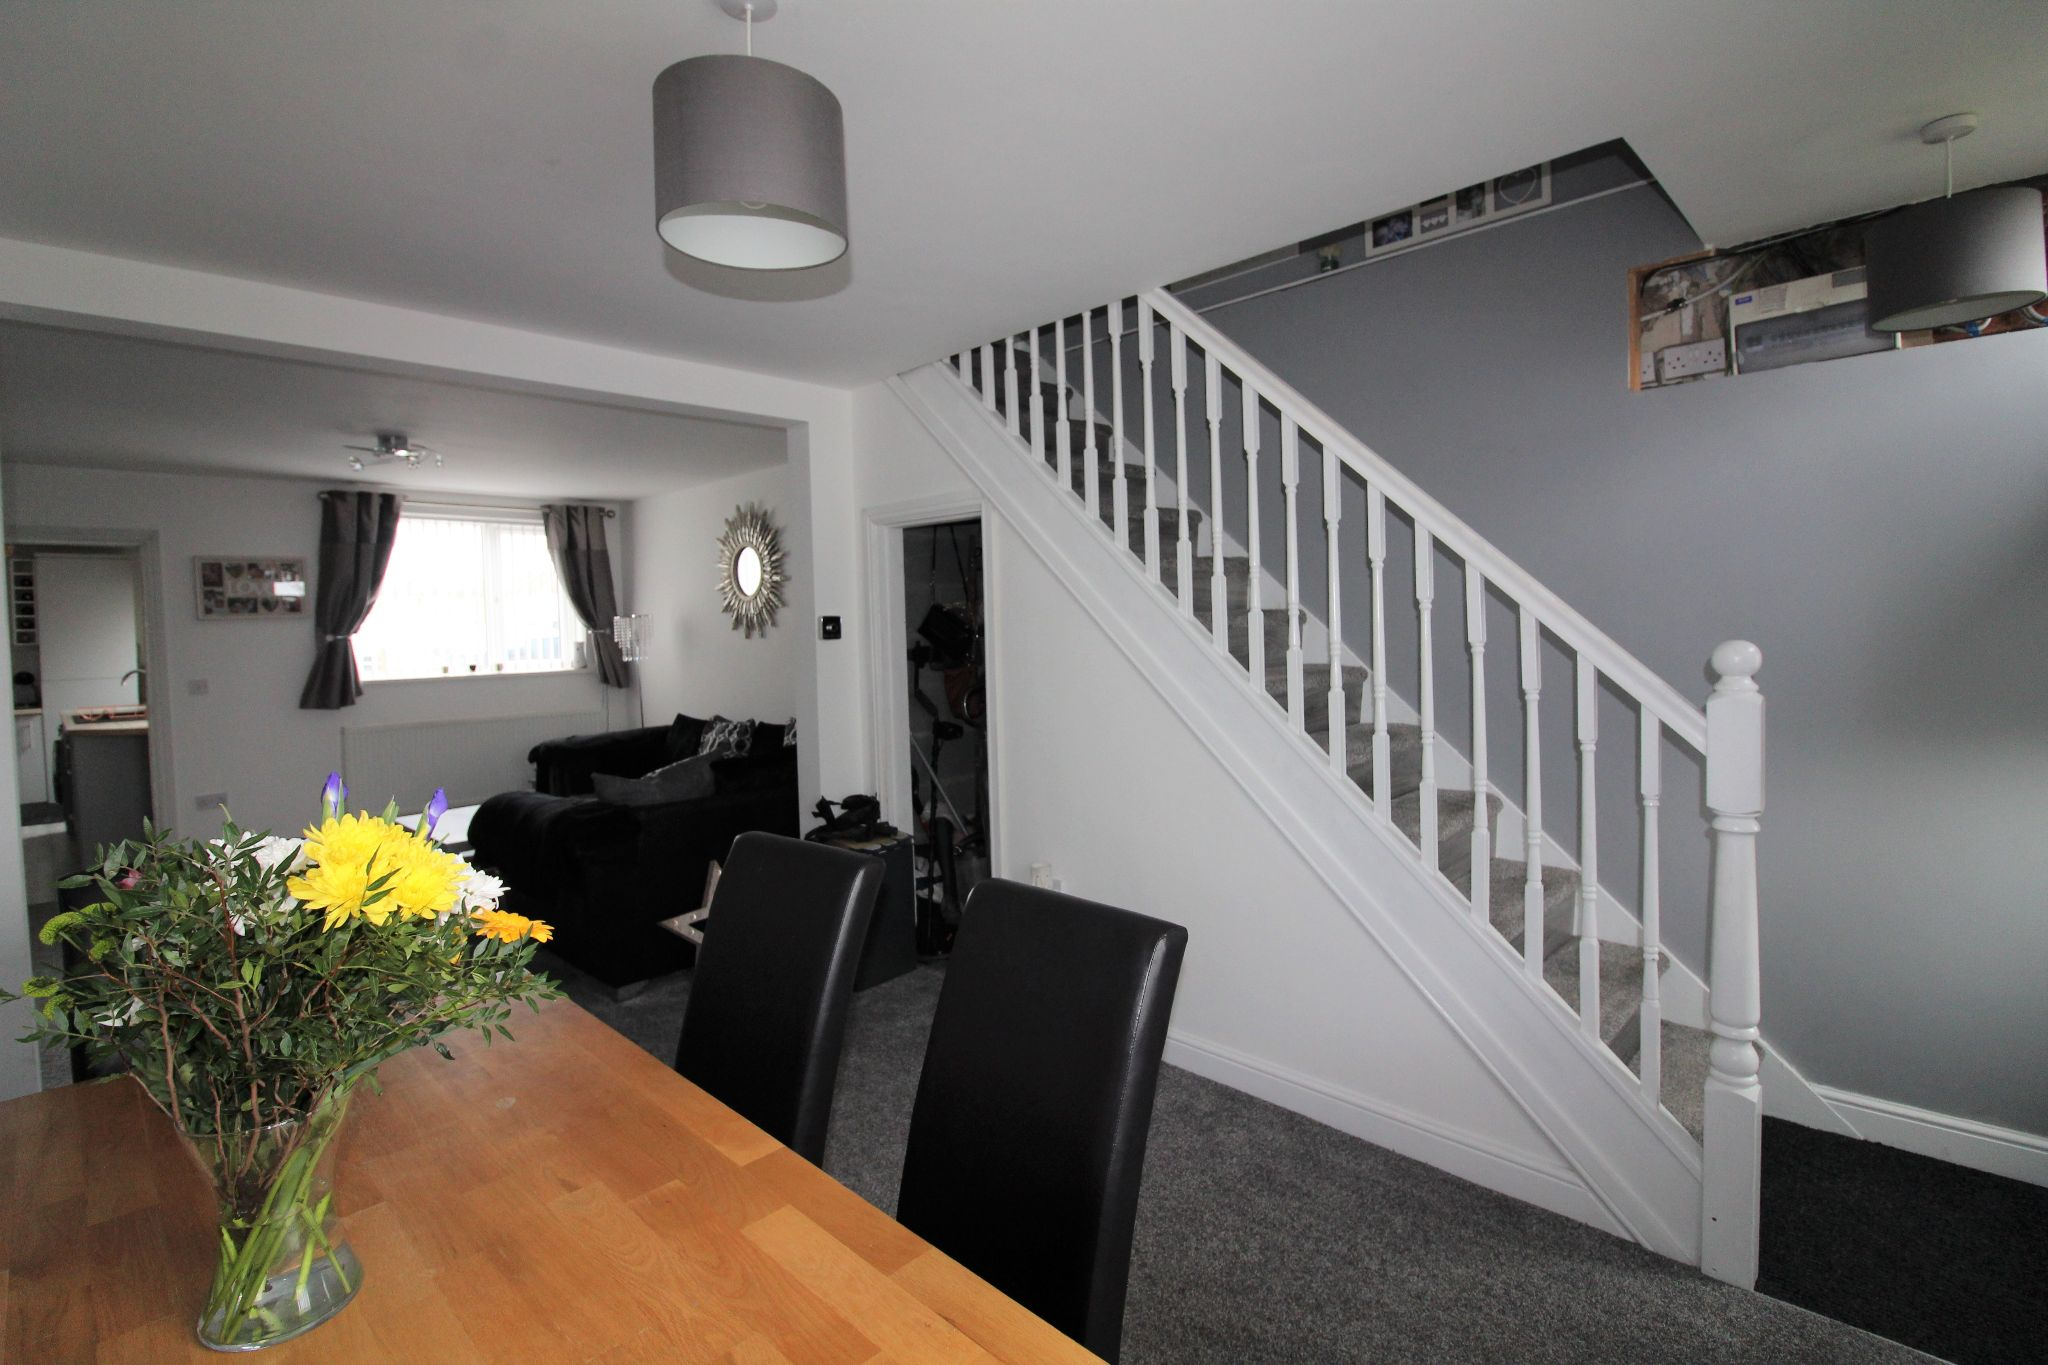 3 bedroom mid terraced house Sale Agreed in Roddymoor - Photograph 3.